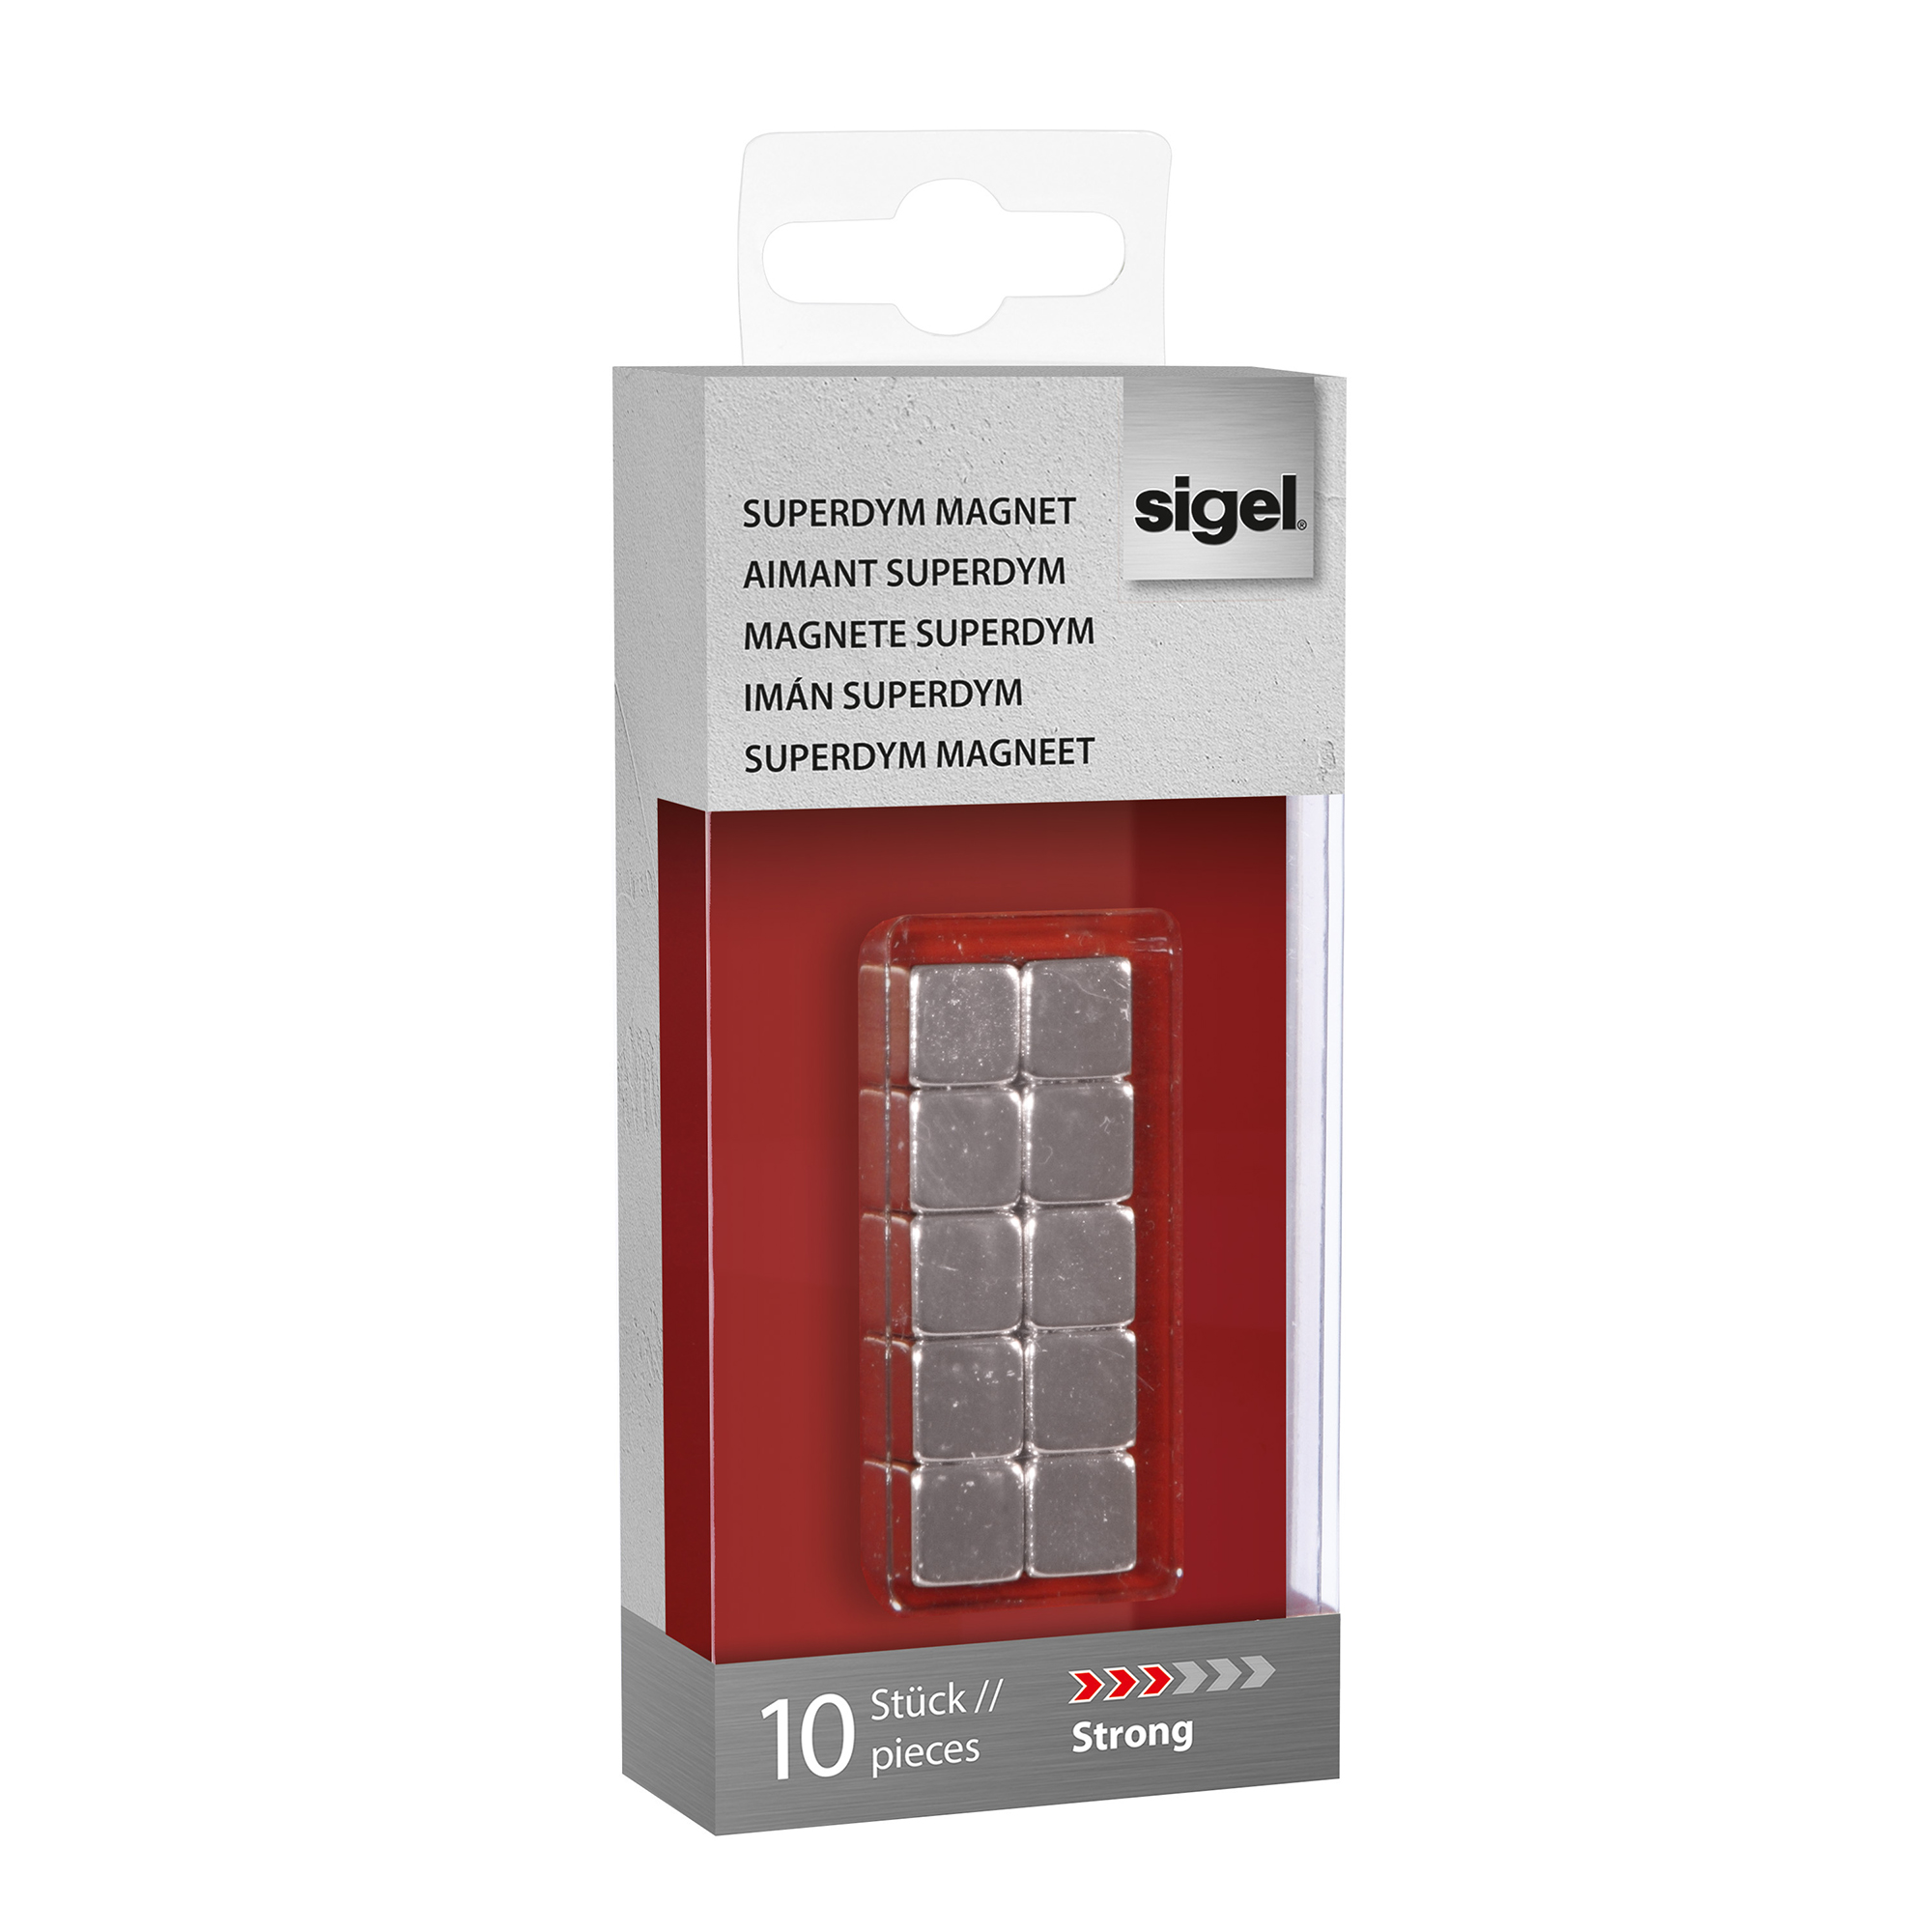 Magnets Sigel SuperDym Magnets C5 Cube Silver Ref GL193 Pack 10